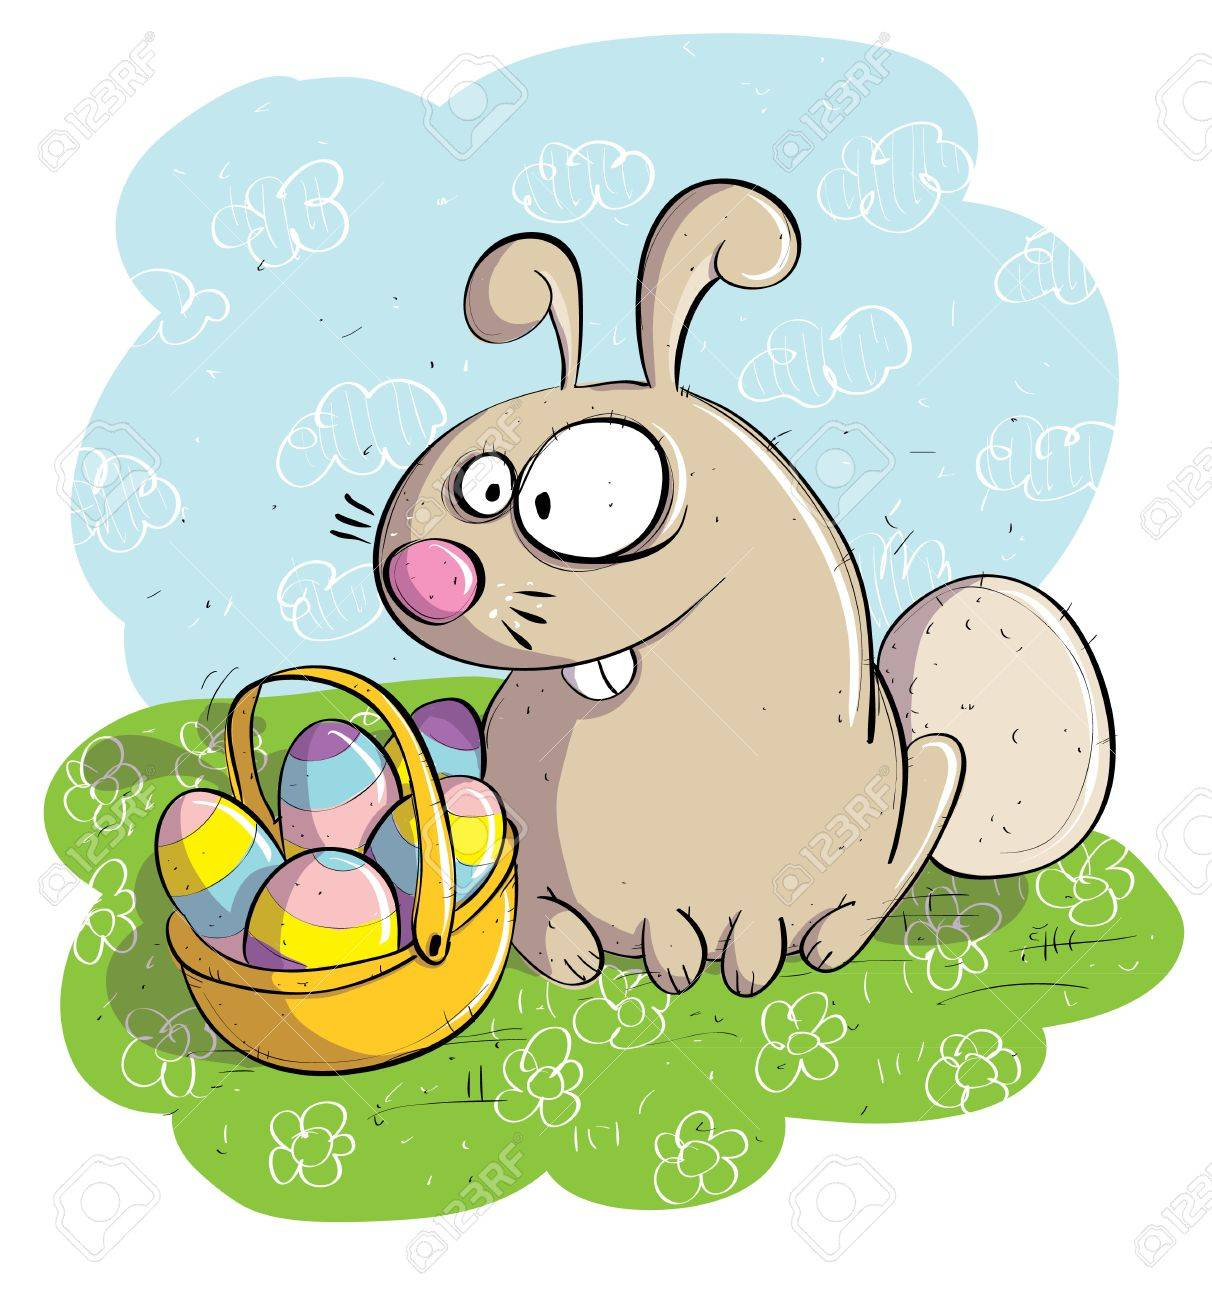 Easter Bunny with Basket of Eggs Stock Vector - 17139248